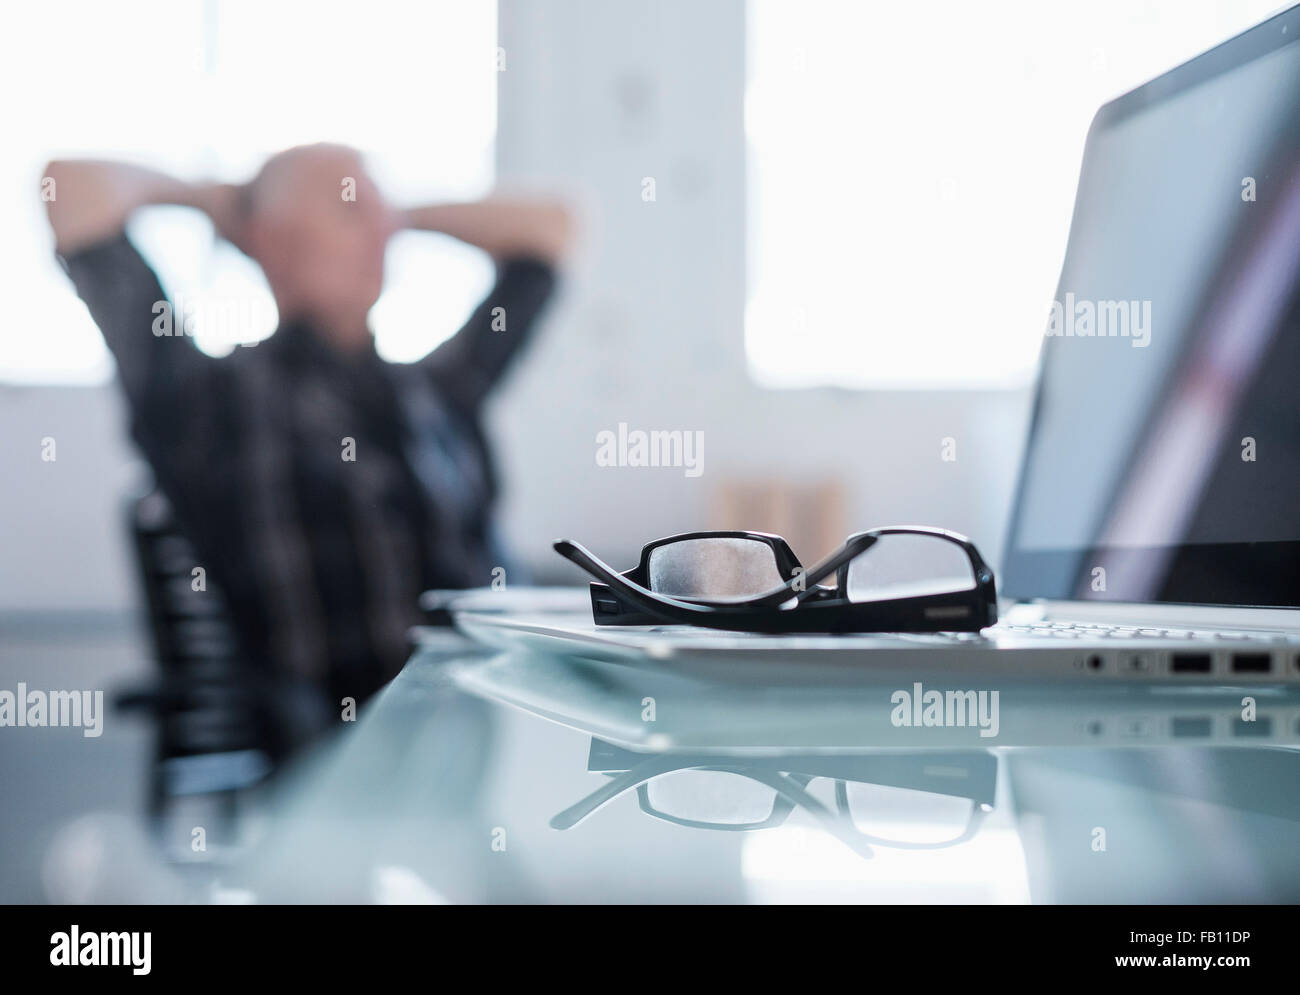 Eyeglasses and laptop on desk in office, man relaxing in background - Stock Image